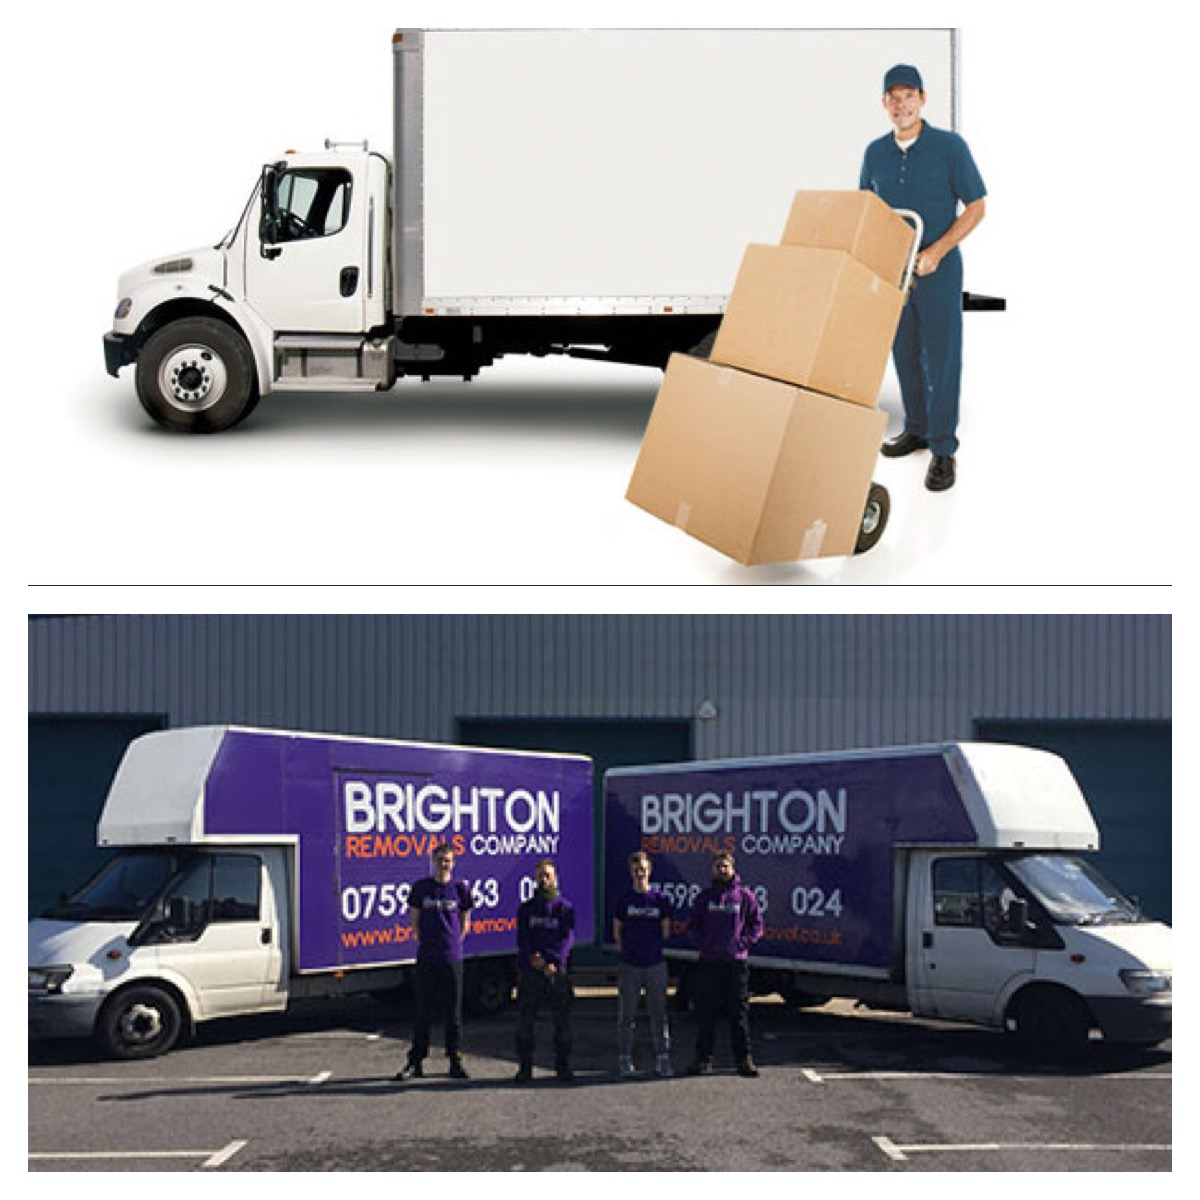 Removals firms Brighton